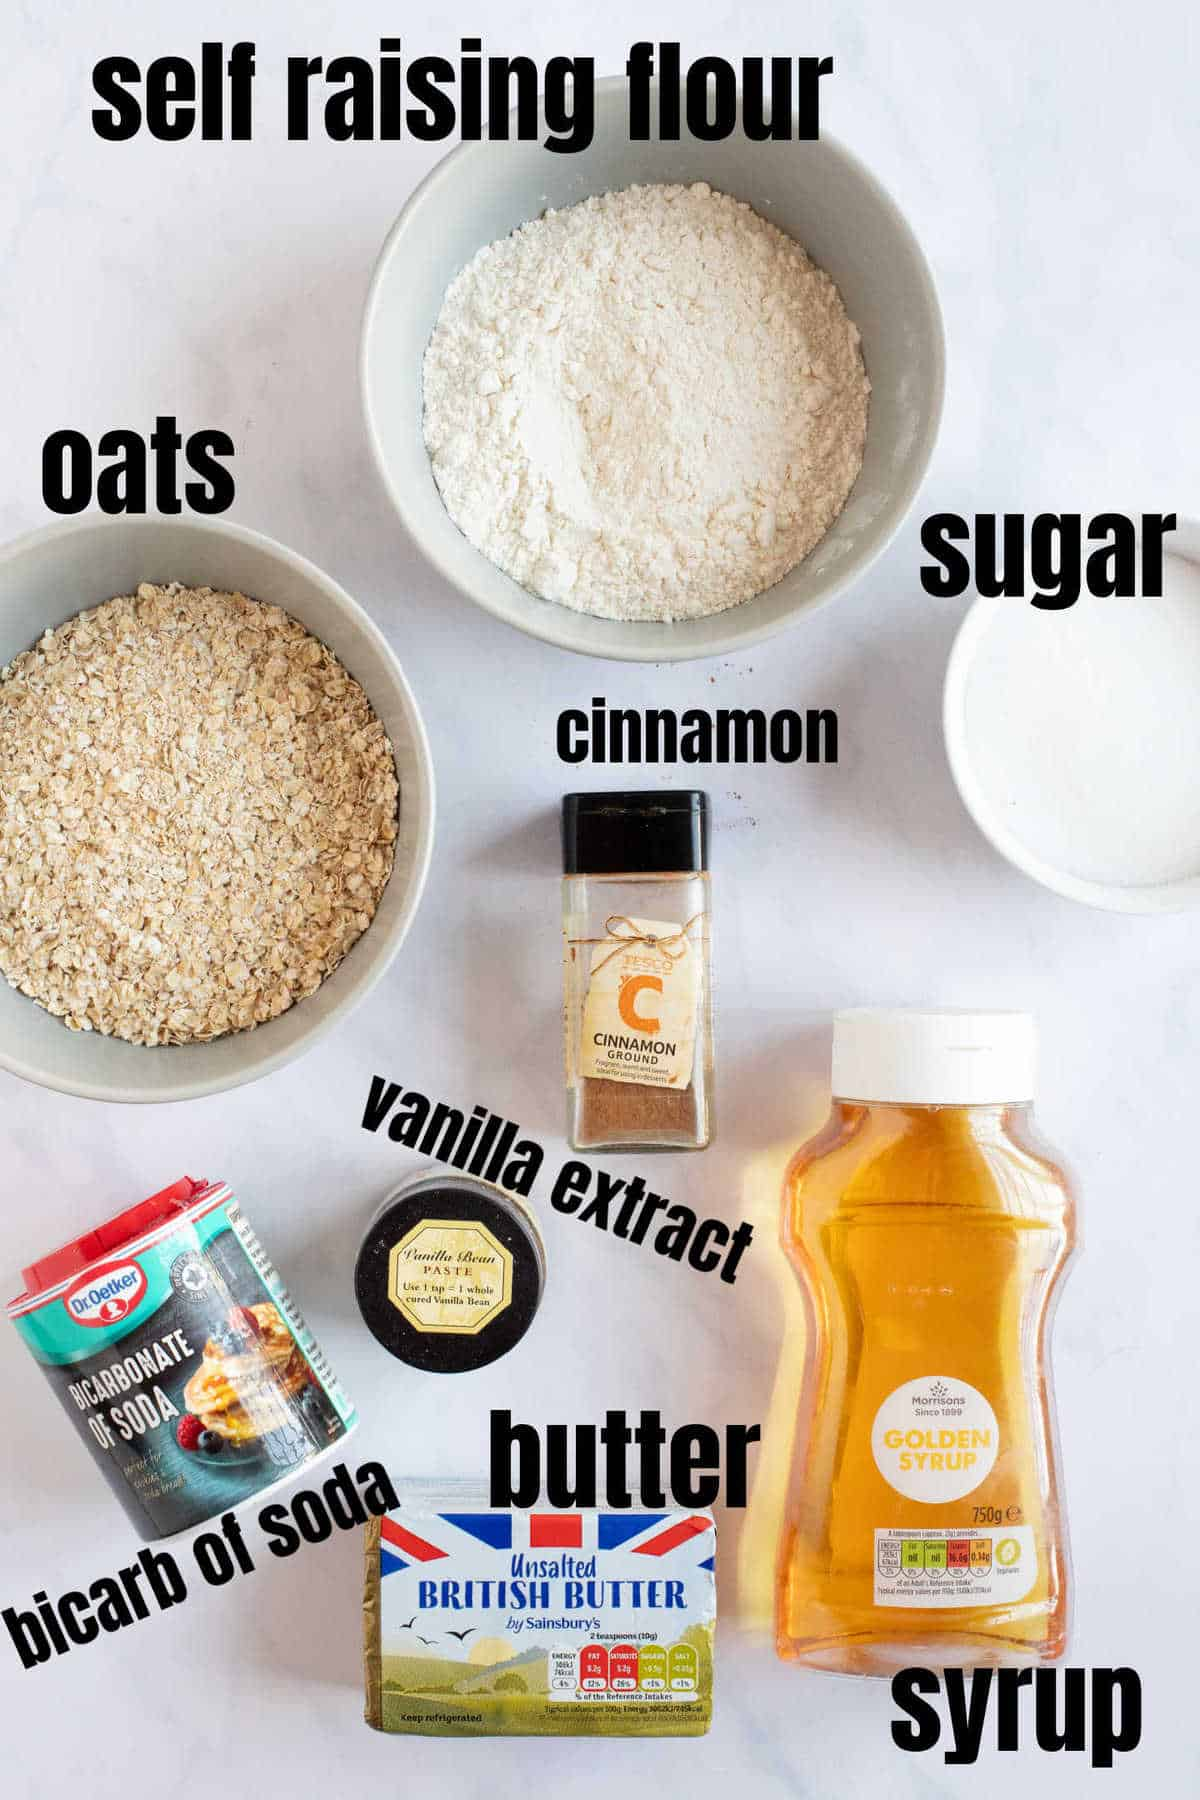 Ingredients for cinnamon cookies.